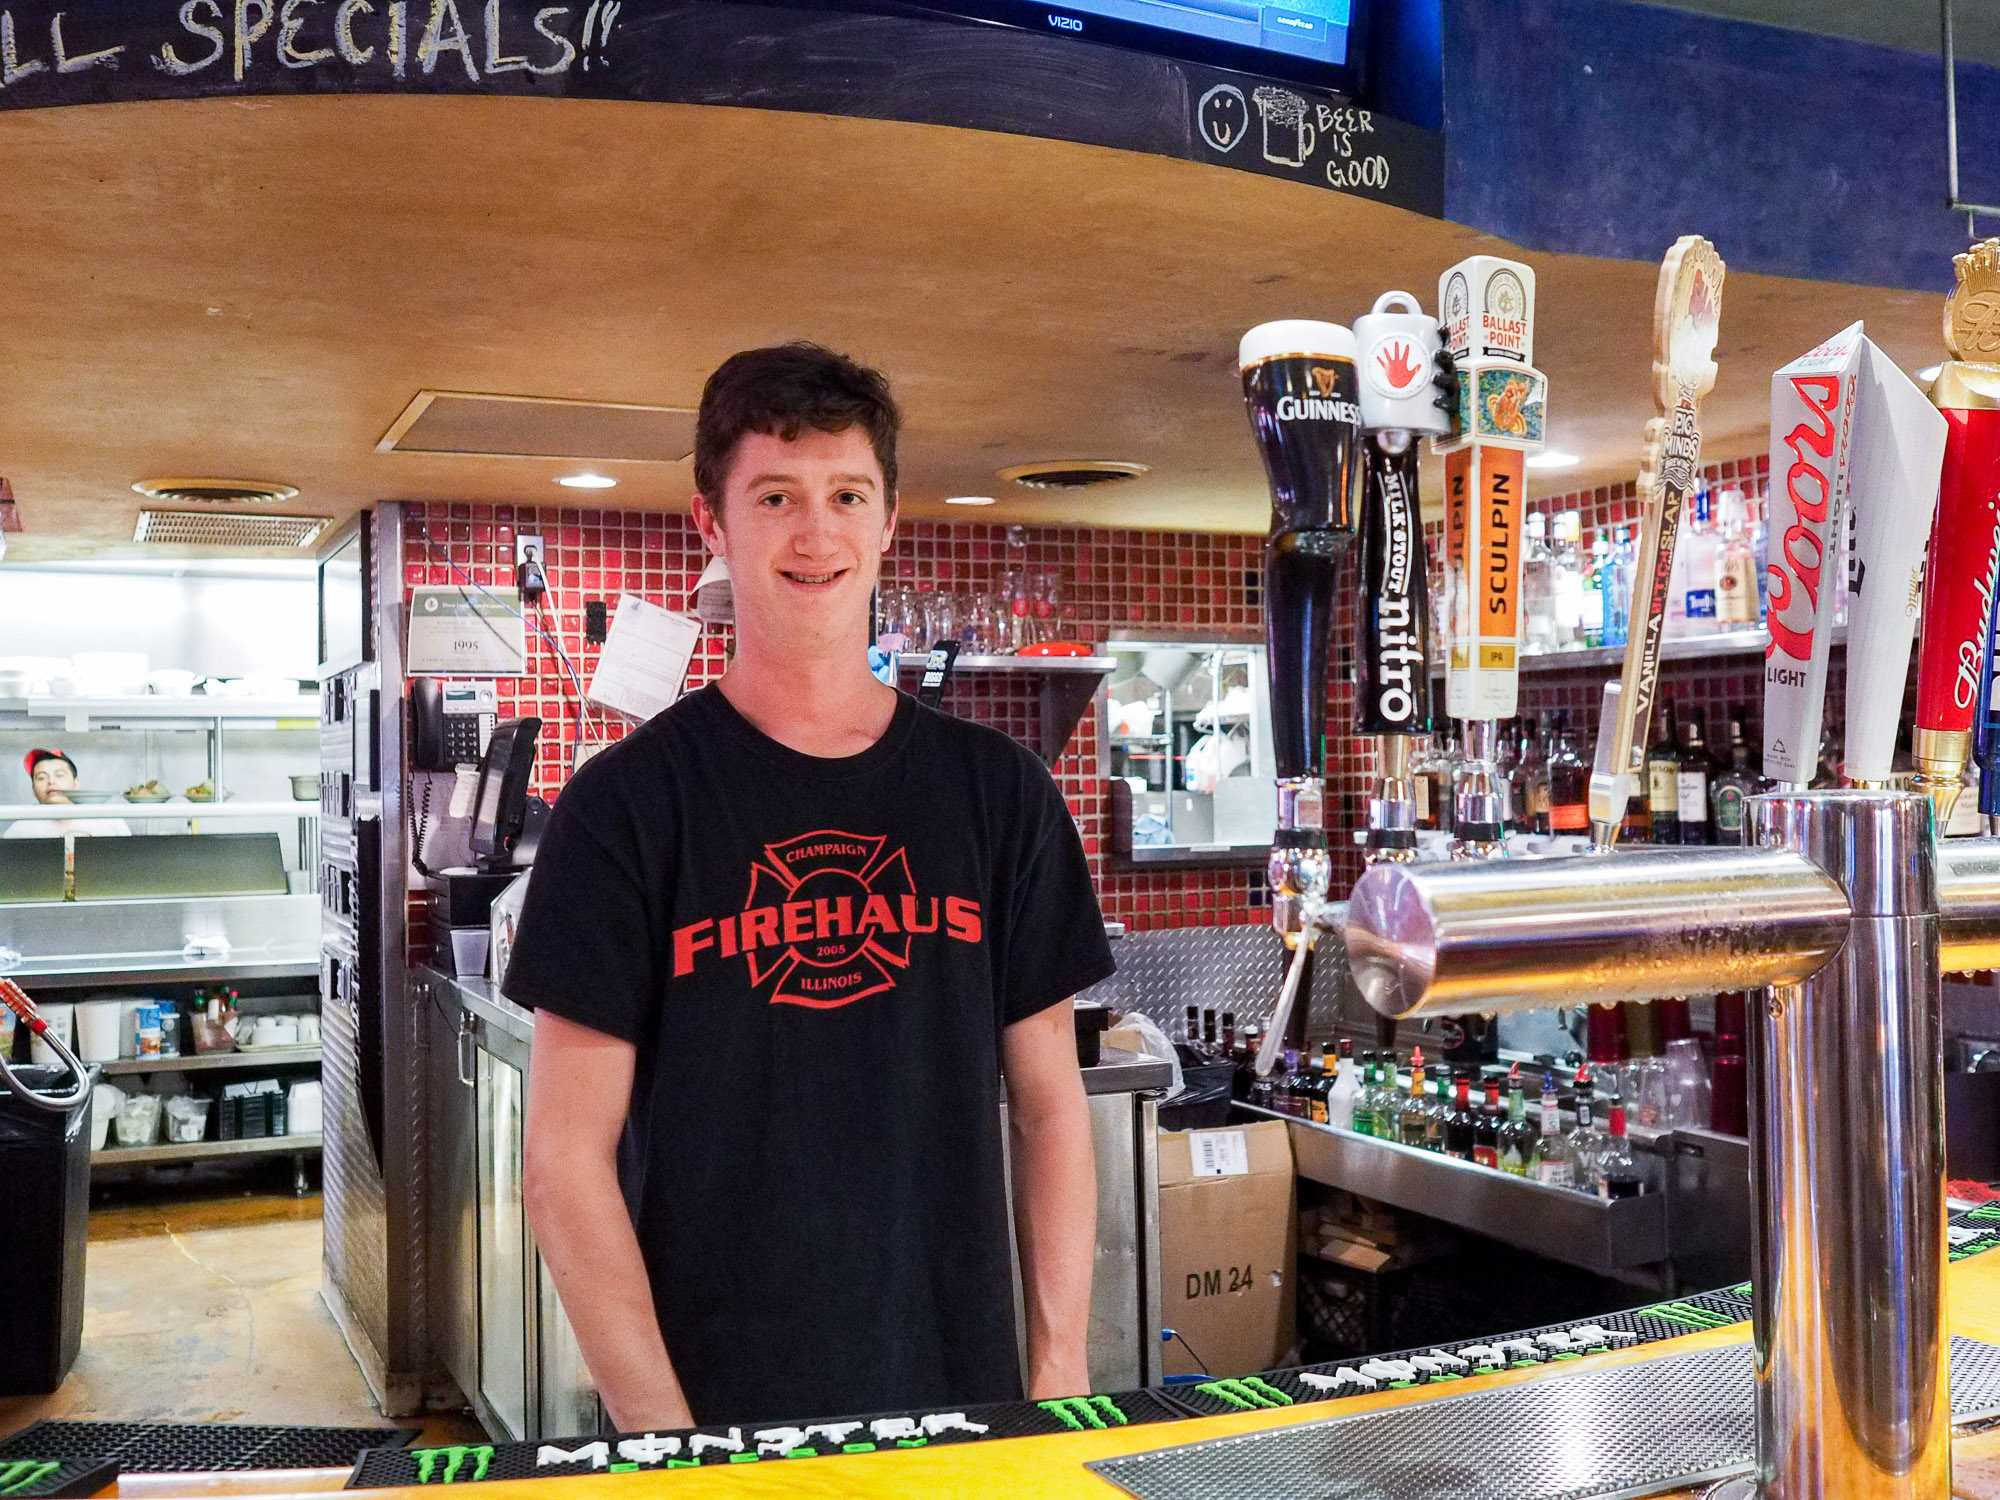 Eric Lotter (senior) a current bartender at Firehaus has been employed for three years. Champaign, IL. September 5, 2016.